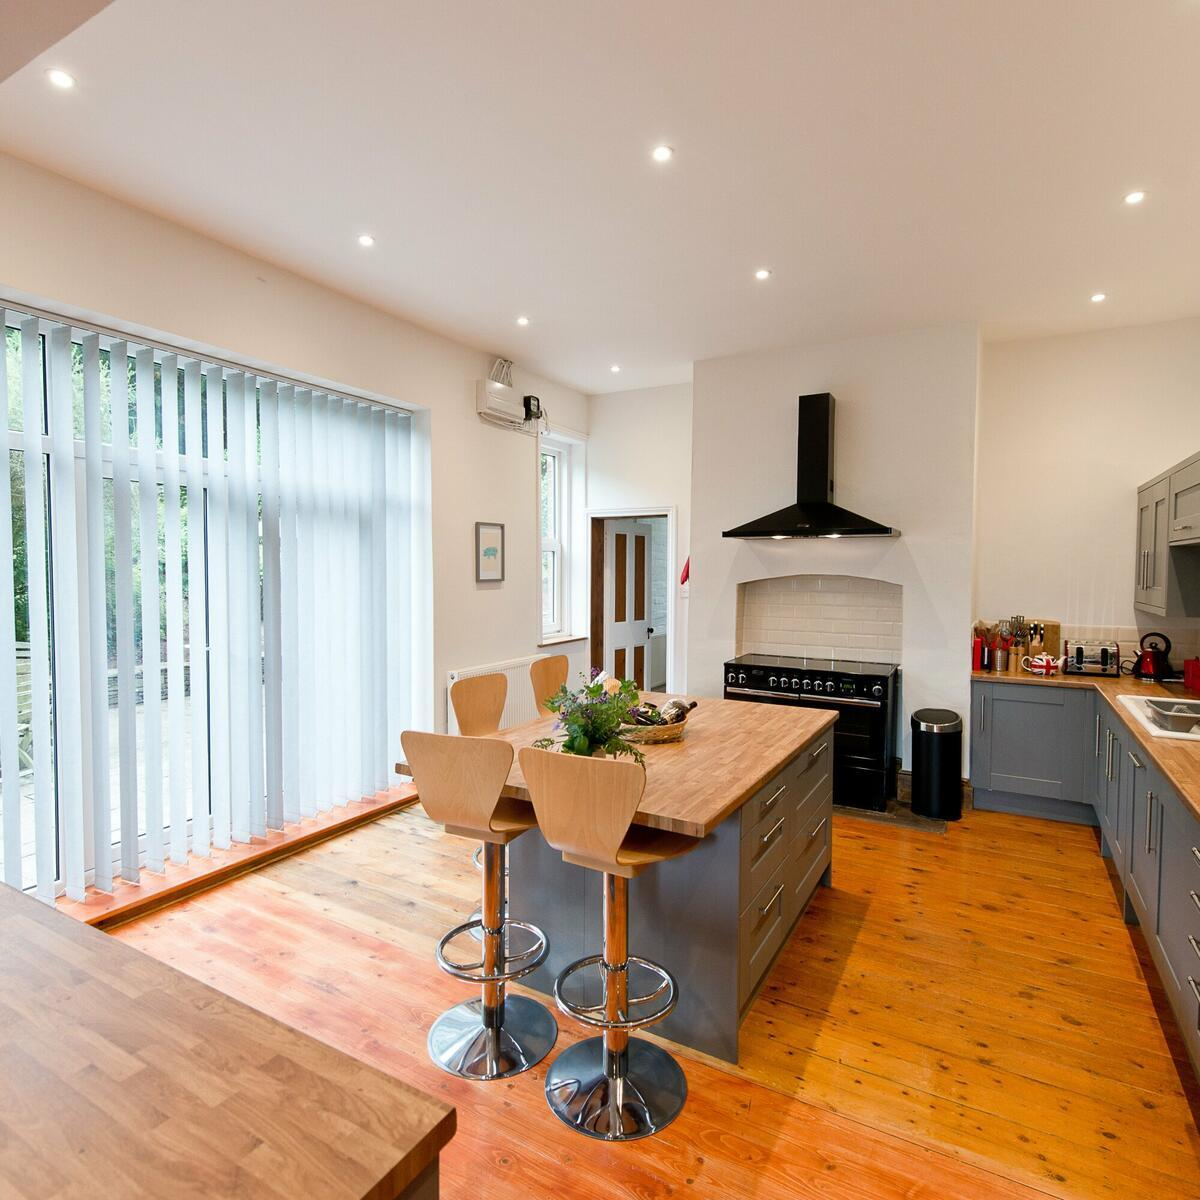 The open plan kitchen opens out onto the patio